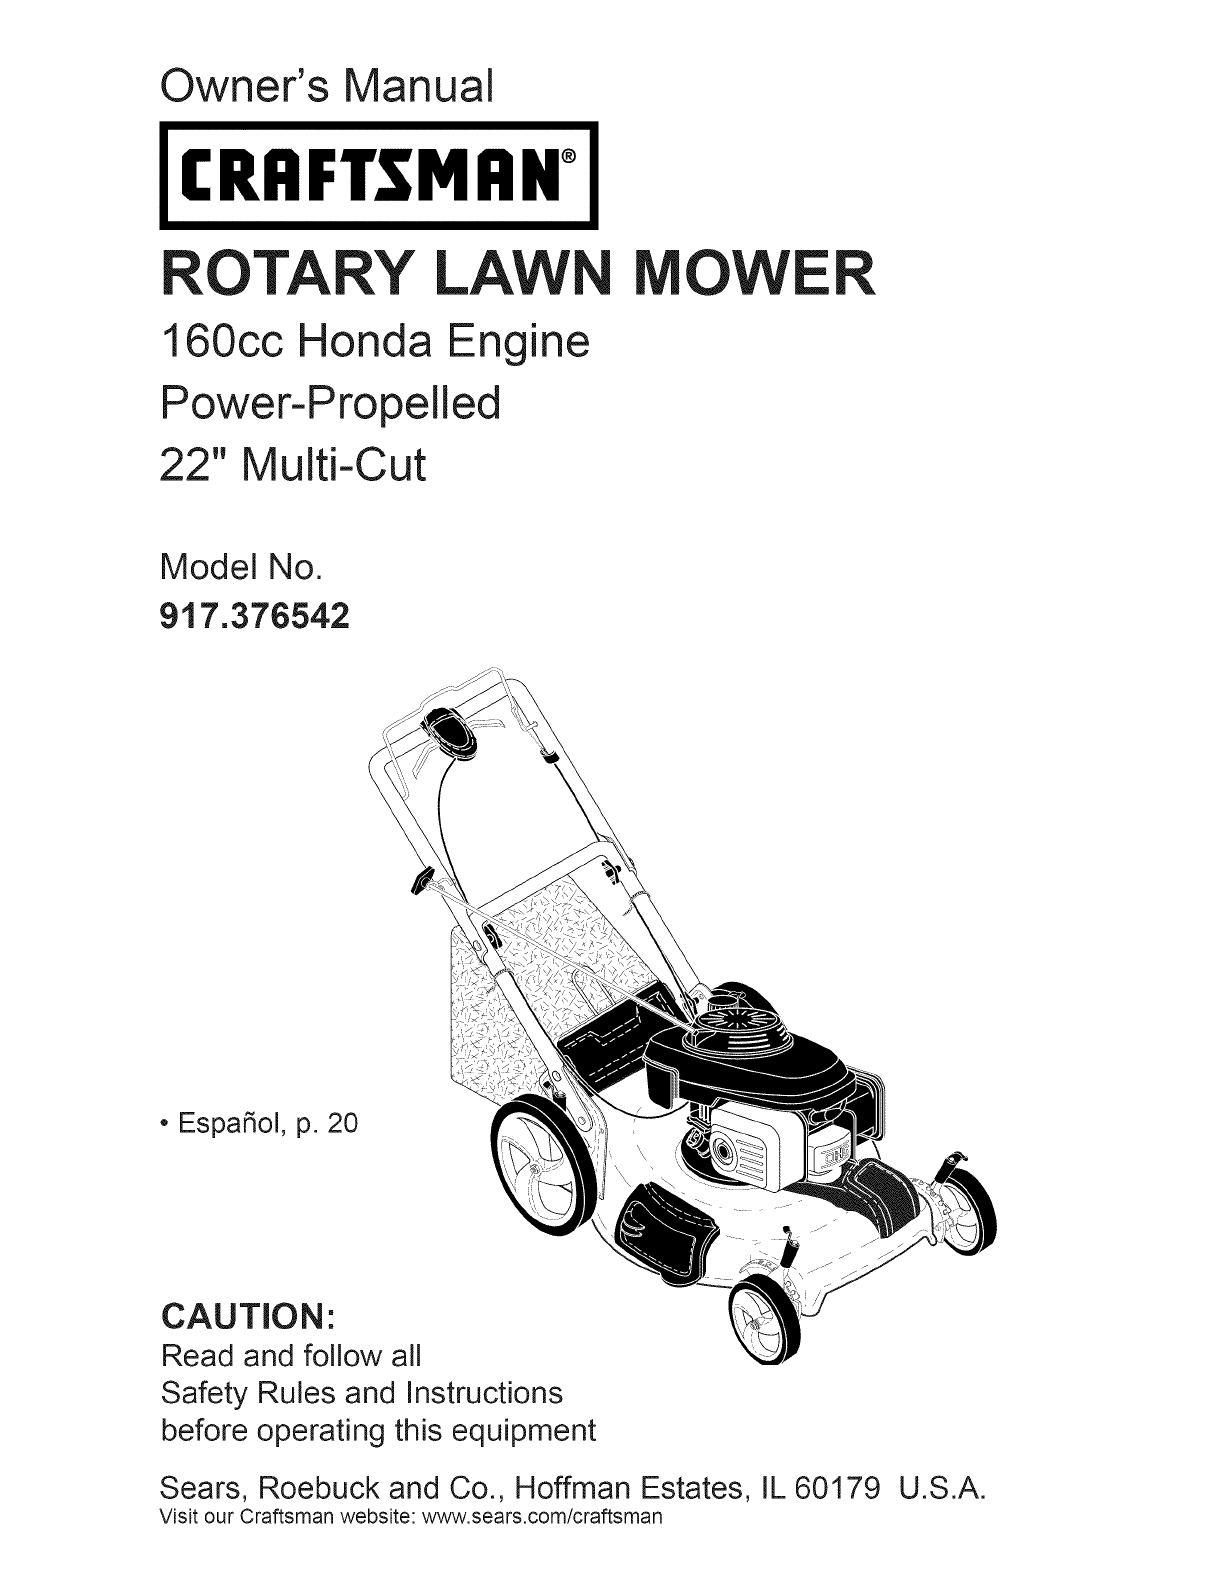 craftsman lawn mower 917 376542 user guide manualsonline com rh manualsonline com craftsman gcv160 owner's manual craftsman gcv160 pressure washer manual